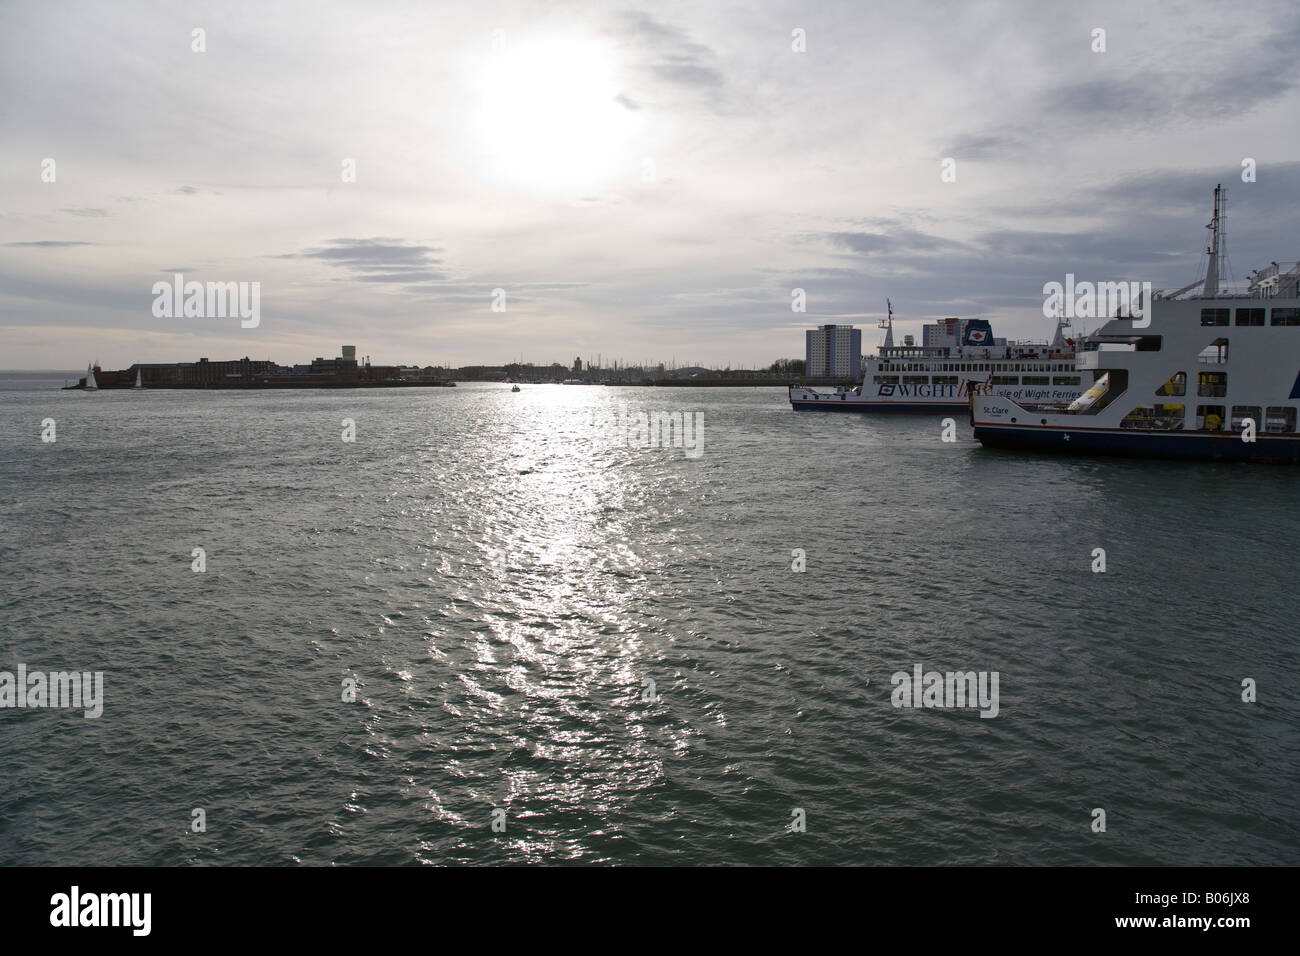 Two Isle of Wight ferries negotiate Portsmouth Harbour, late on a winter's afternoon, Porstmouth, Hampshire, England. Stock Photo